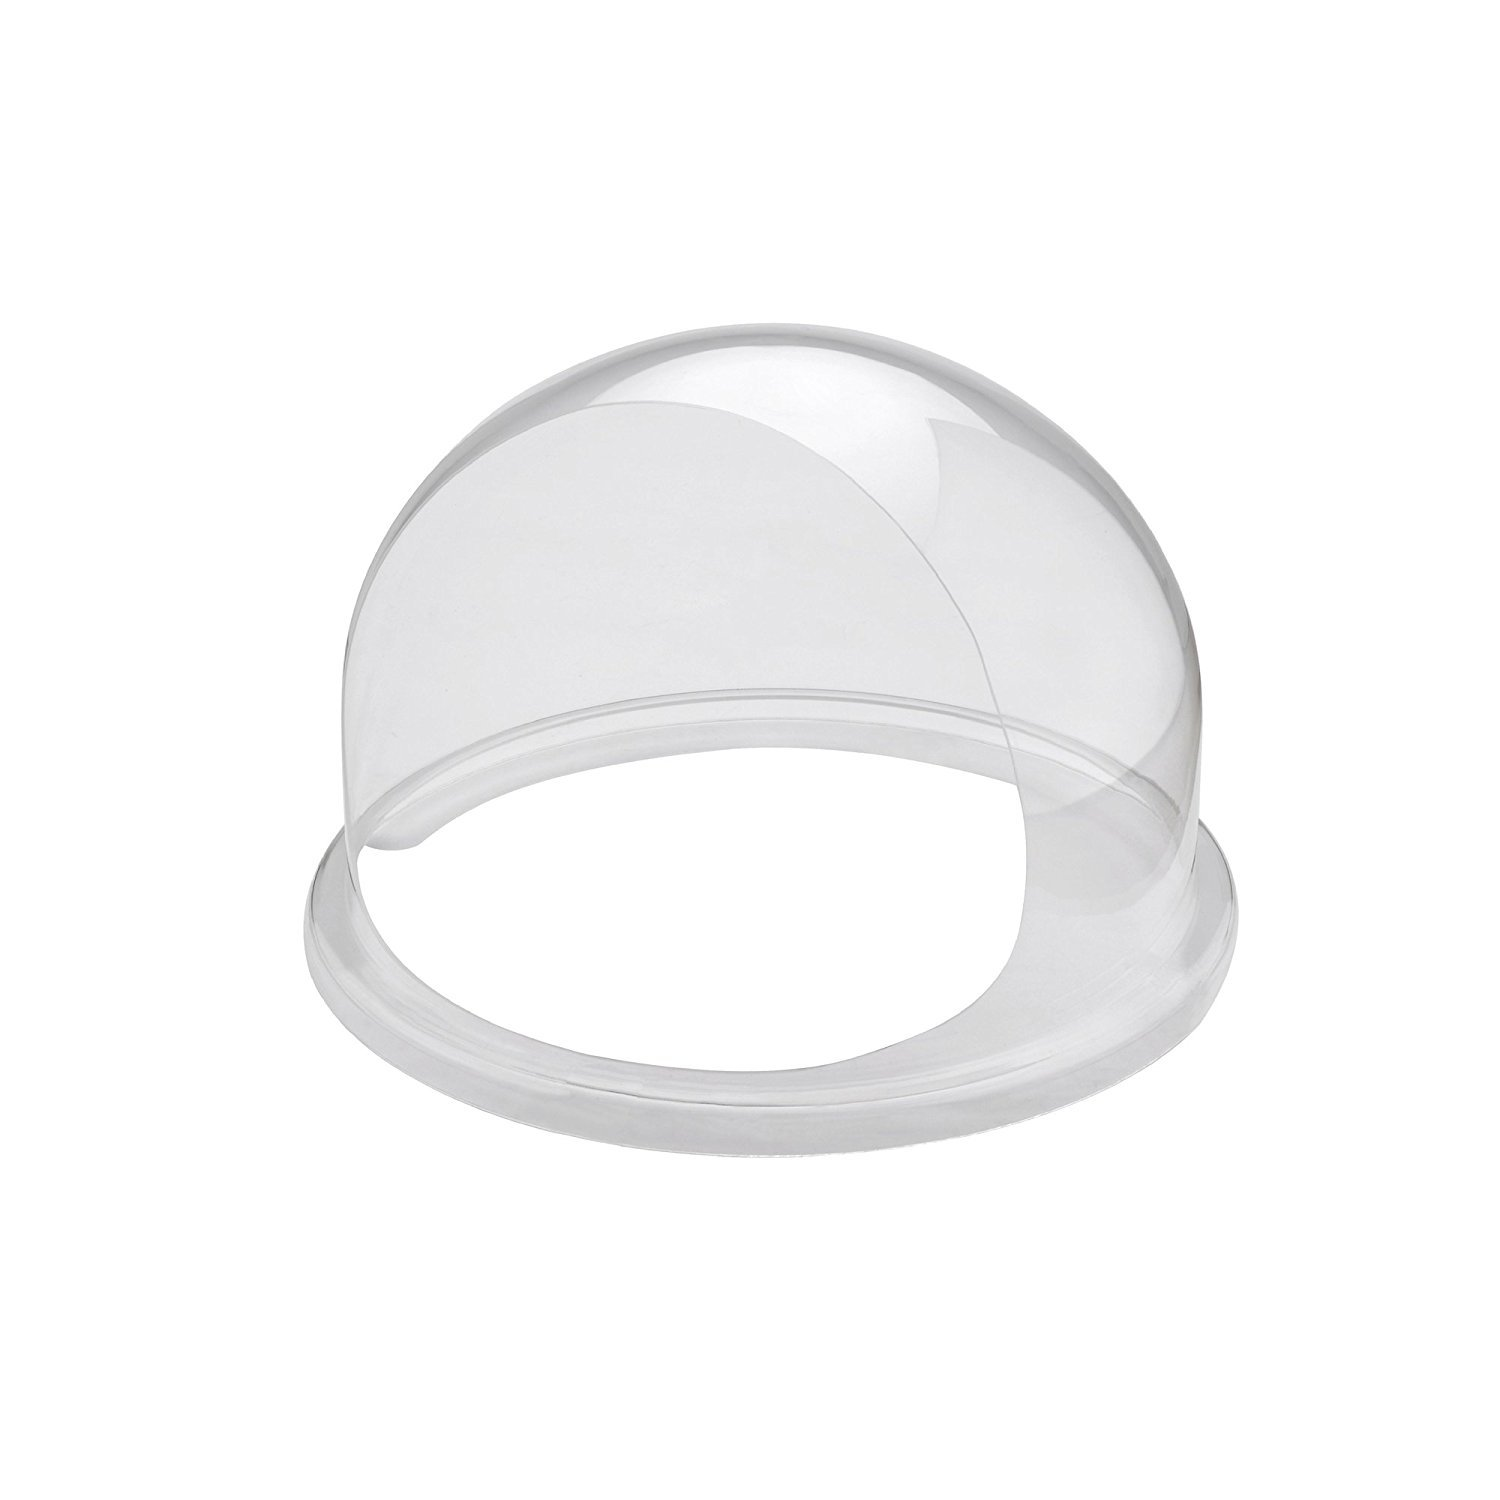 Clevr 20.5'' Commercial Cotton Candy Machine Cover Bubble Shield, White